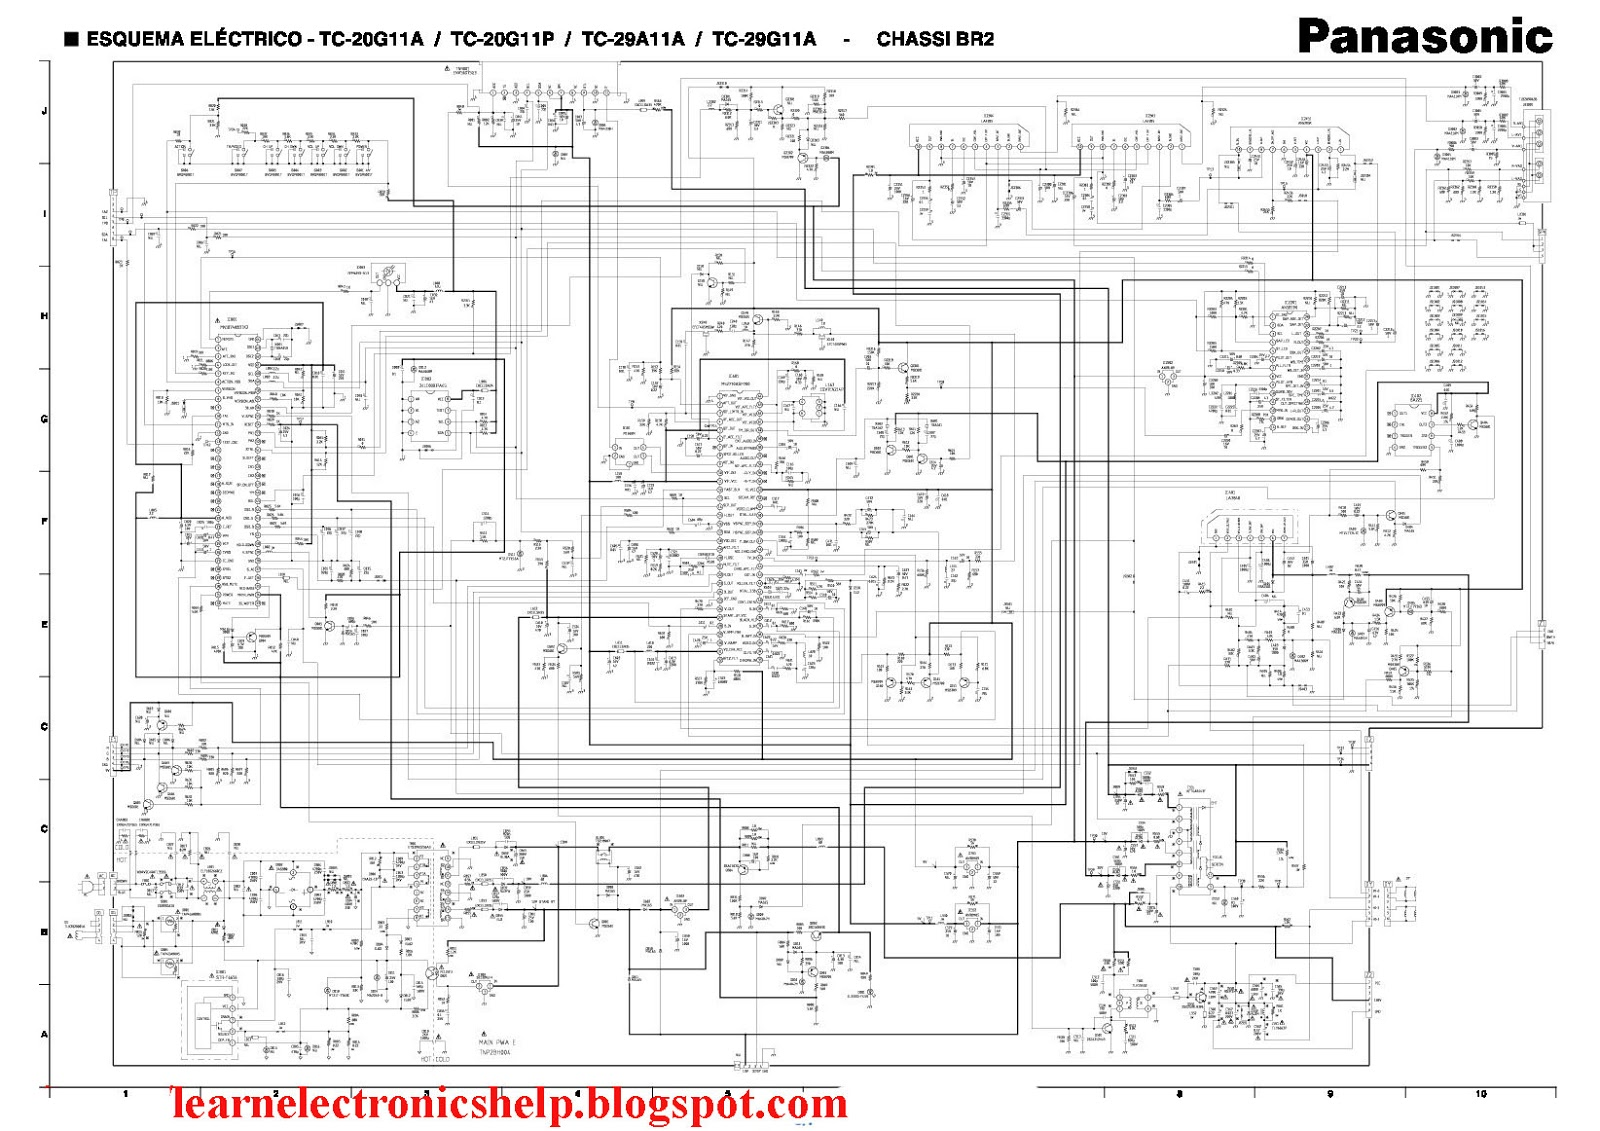 Panasonic Schematic Diagram Trusted Wiring Online Jvc K Series Circuit Diagrams Best Amplifier